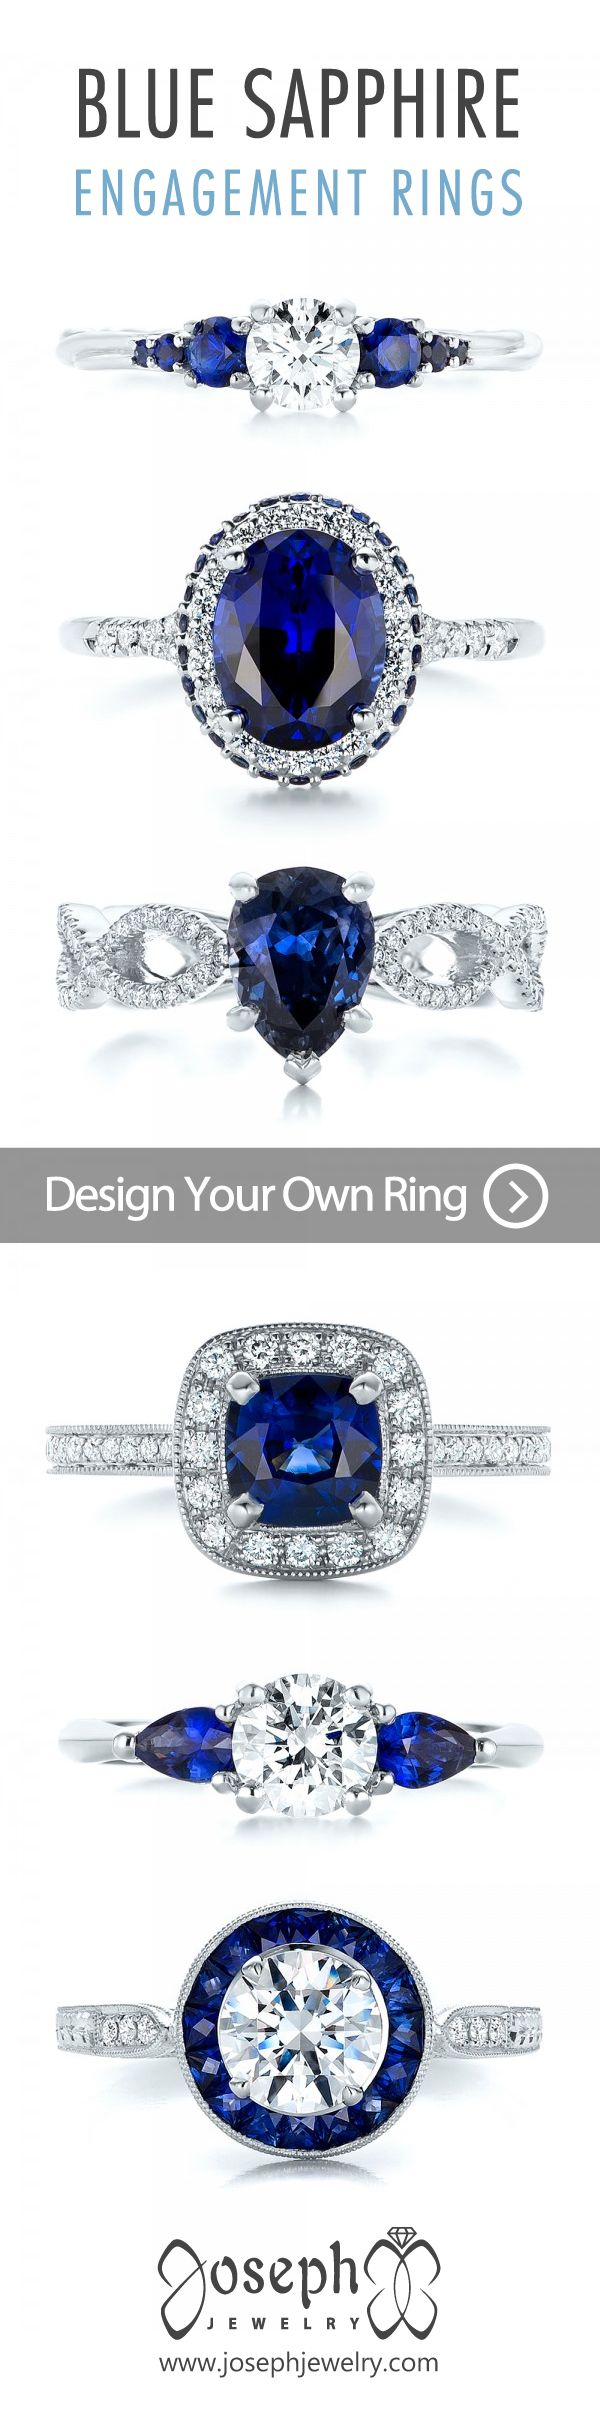 Design Your Own Engagement Ring! Blue Sapphire Is A Classic Alternative  Gemstone Center, And